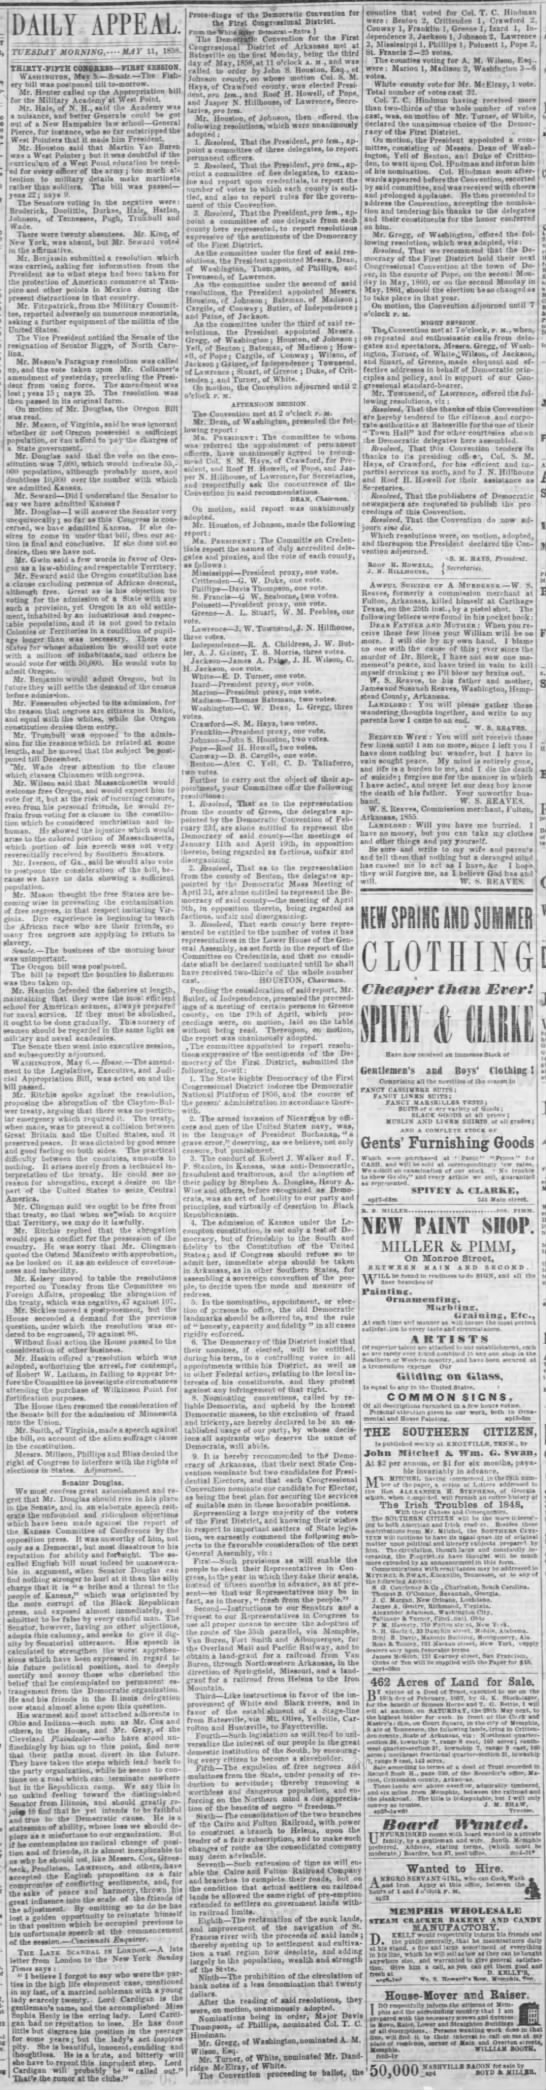 Memphis Daily Appeal Memphis, Tennessee